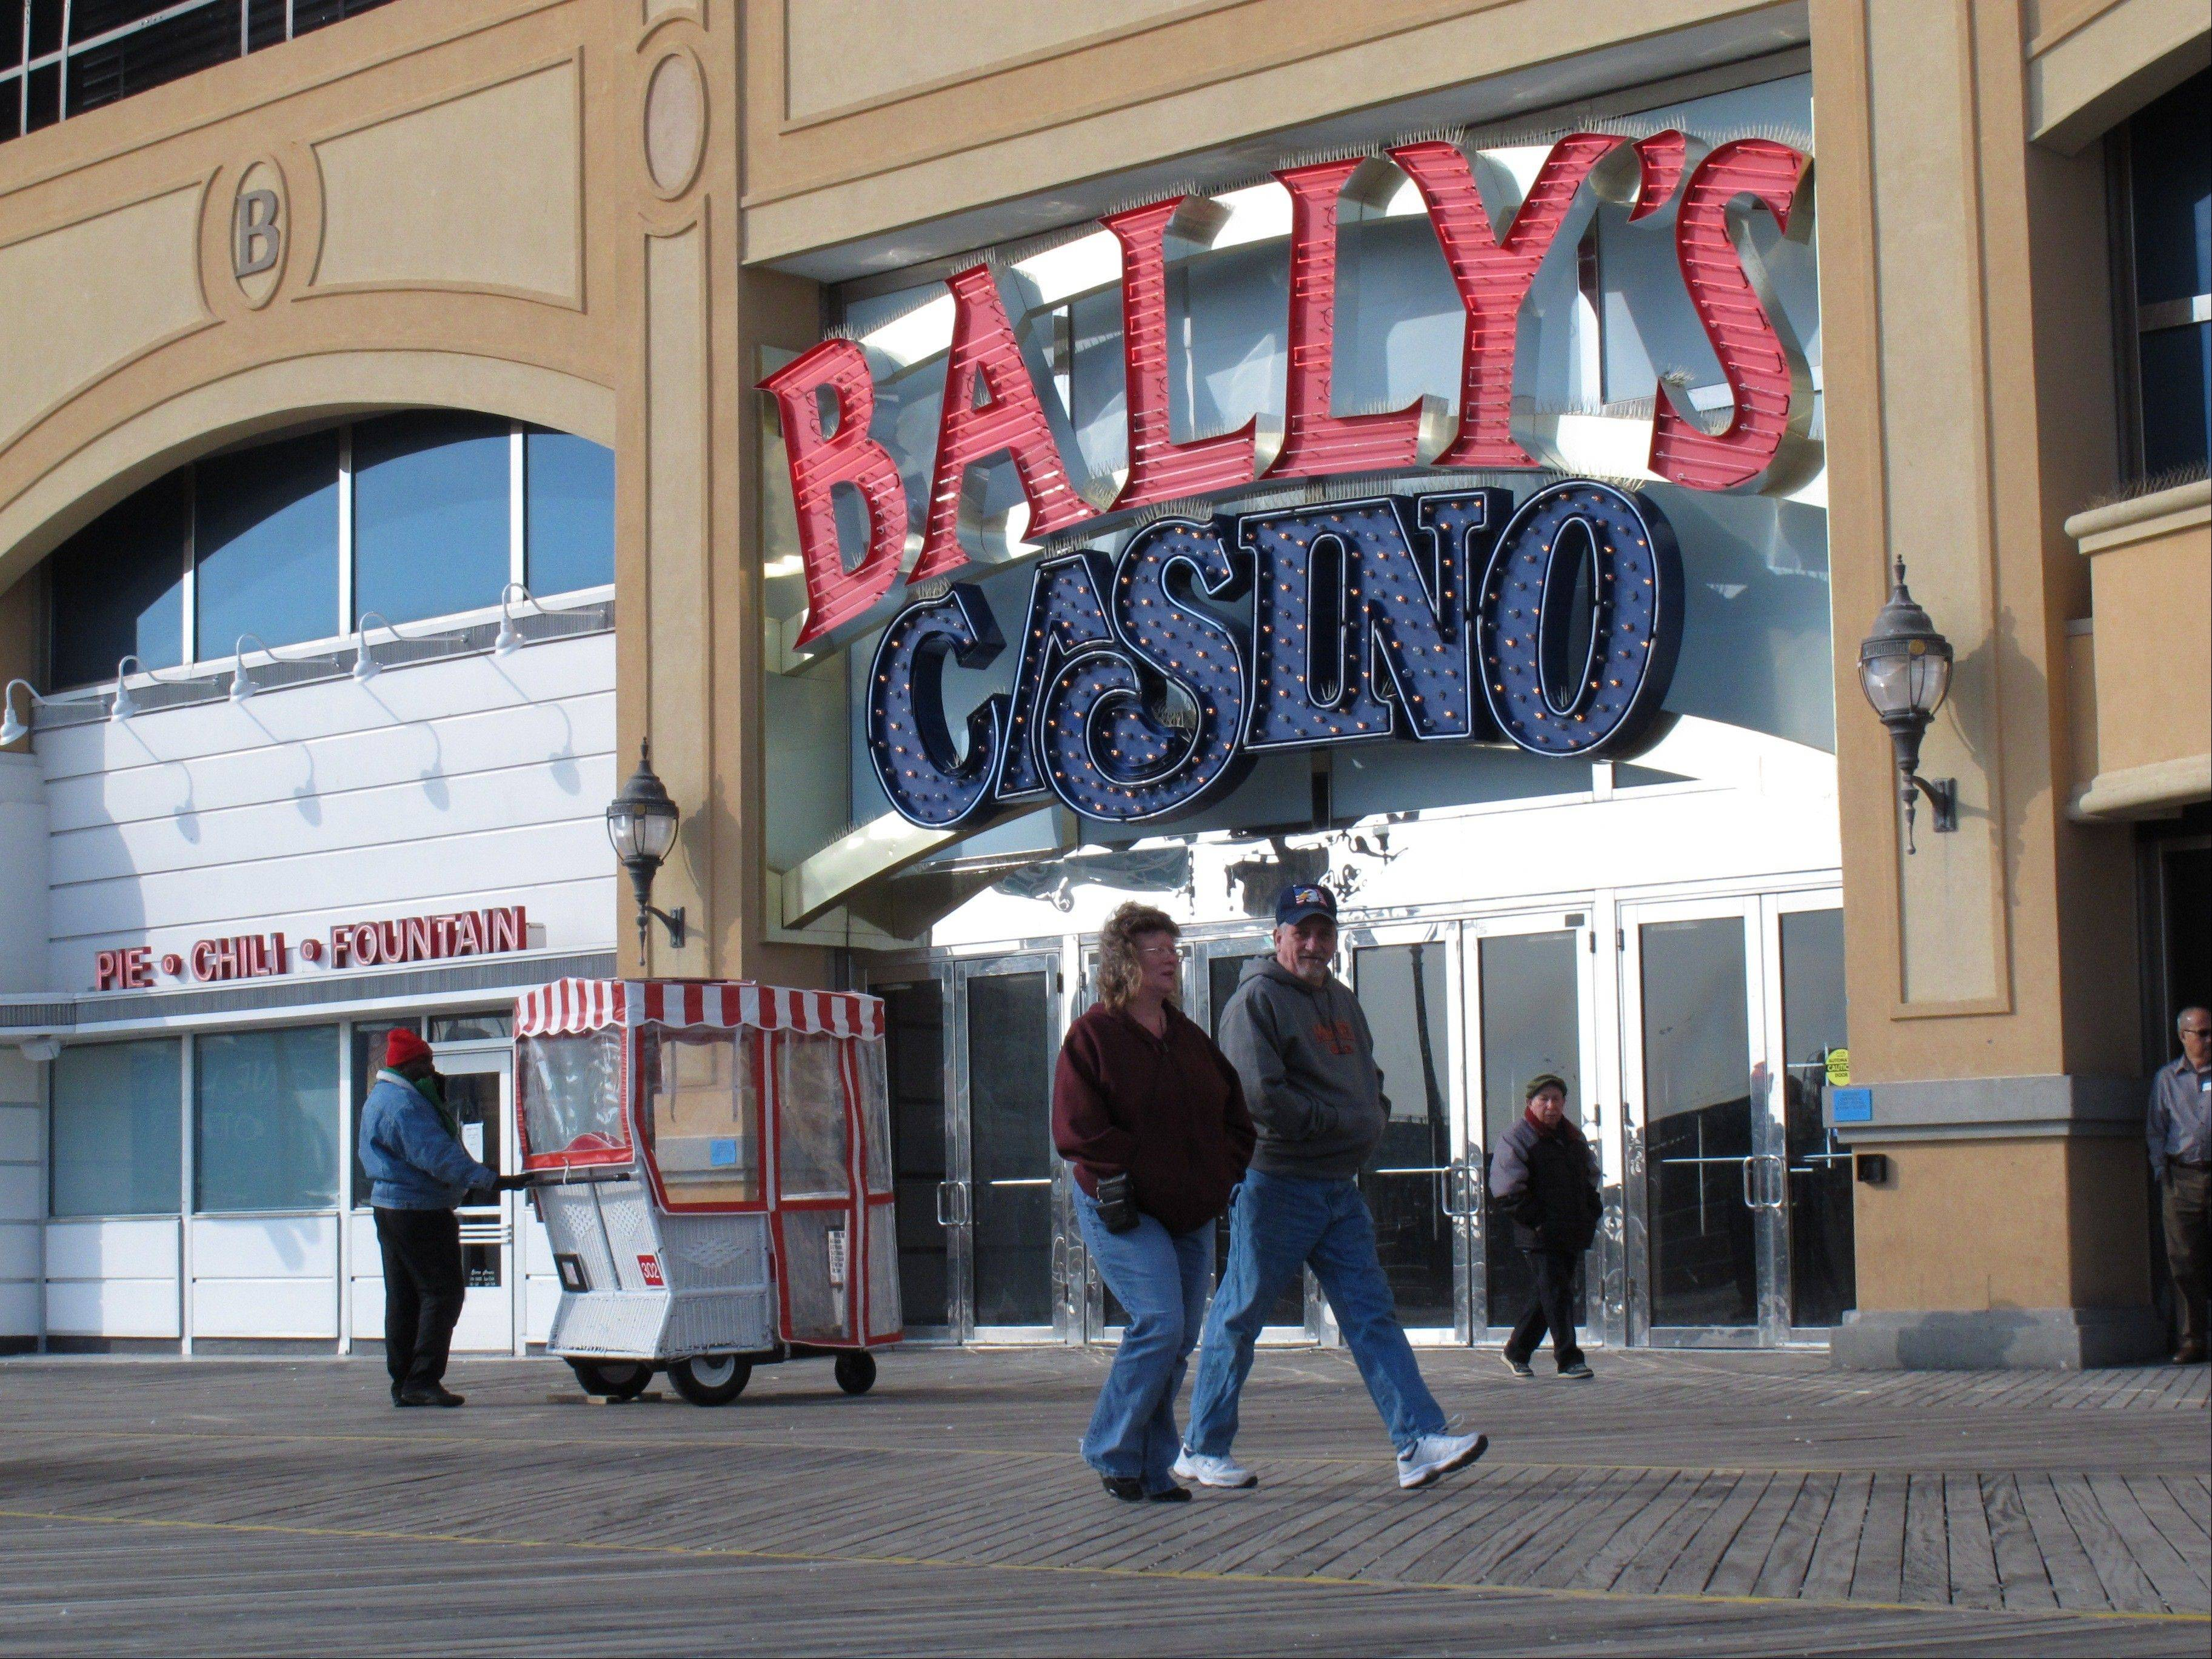 Pedestrians walk on the Atlantic City N.J. Boardwalk on Wednesday, a day before New Jersey Gov. Chris Christie vetoed a bill that would have allowed Internet gambling in his state. Christie said he would sign a future bill that sets a 10-year trial period for Internet gambling.